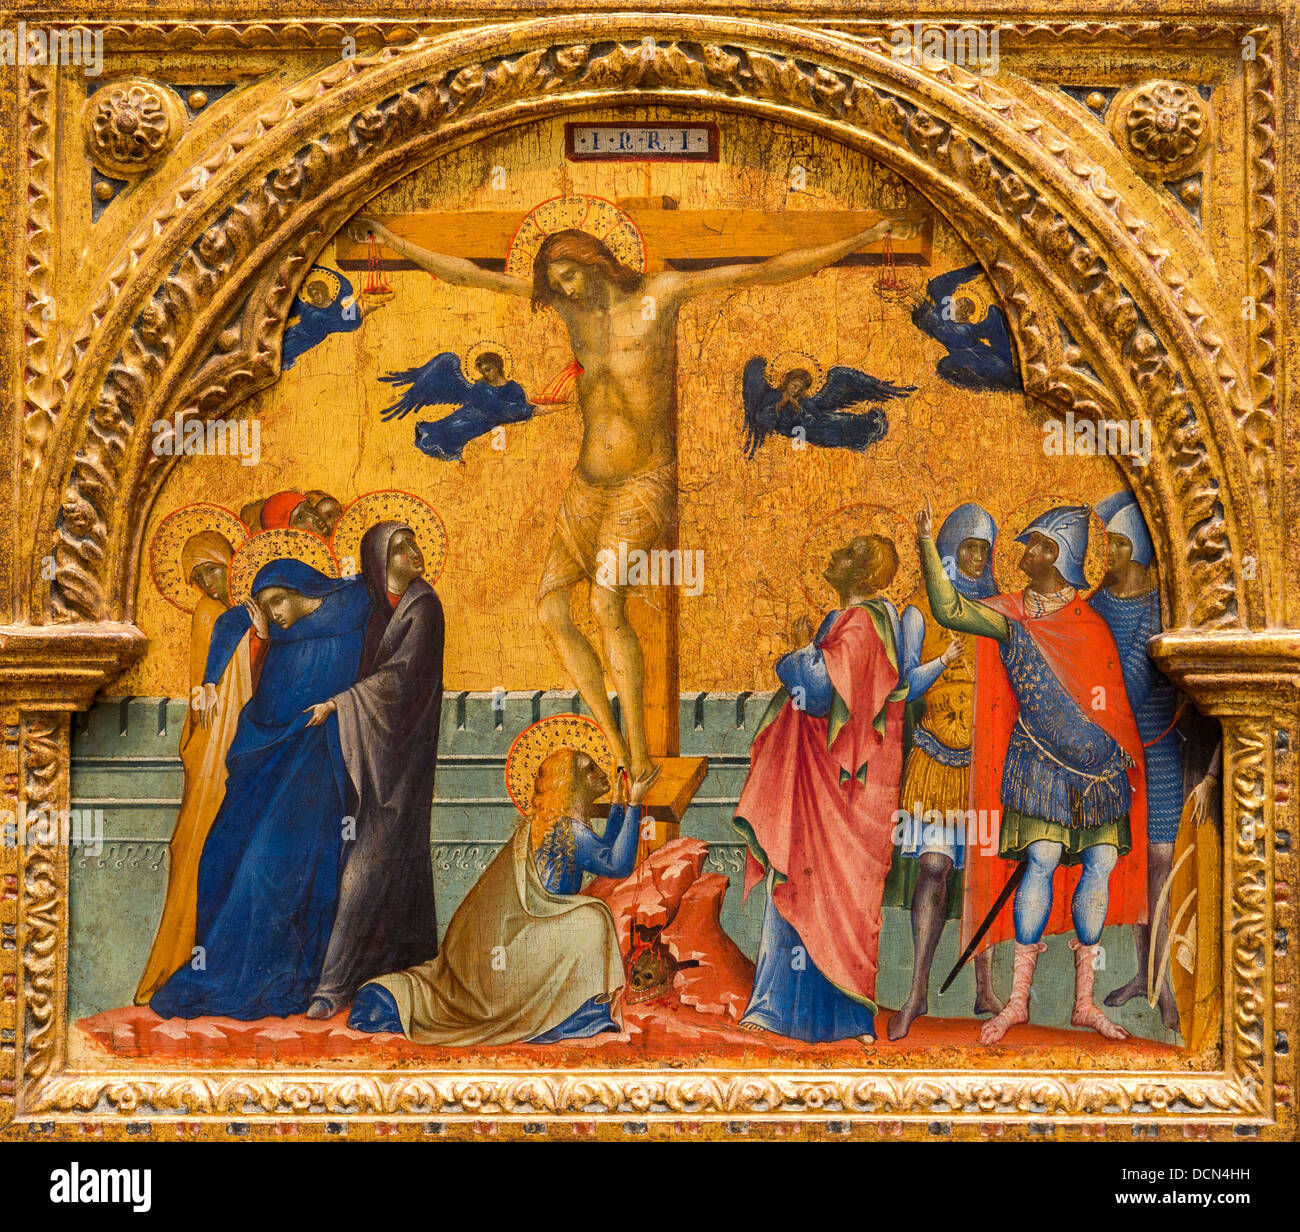 14th century  -  The Crucifixion, 1340 - Paolo Veneziano Philippe Sauvan-Magnet / Active Museum - Stock Image